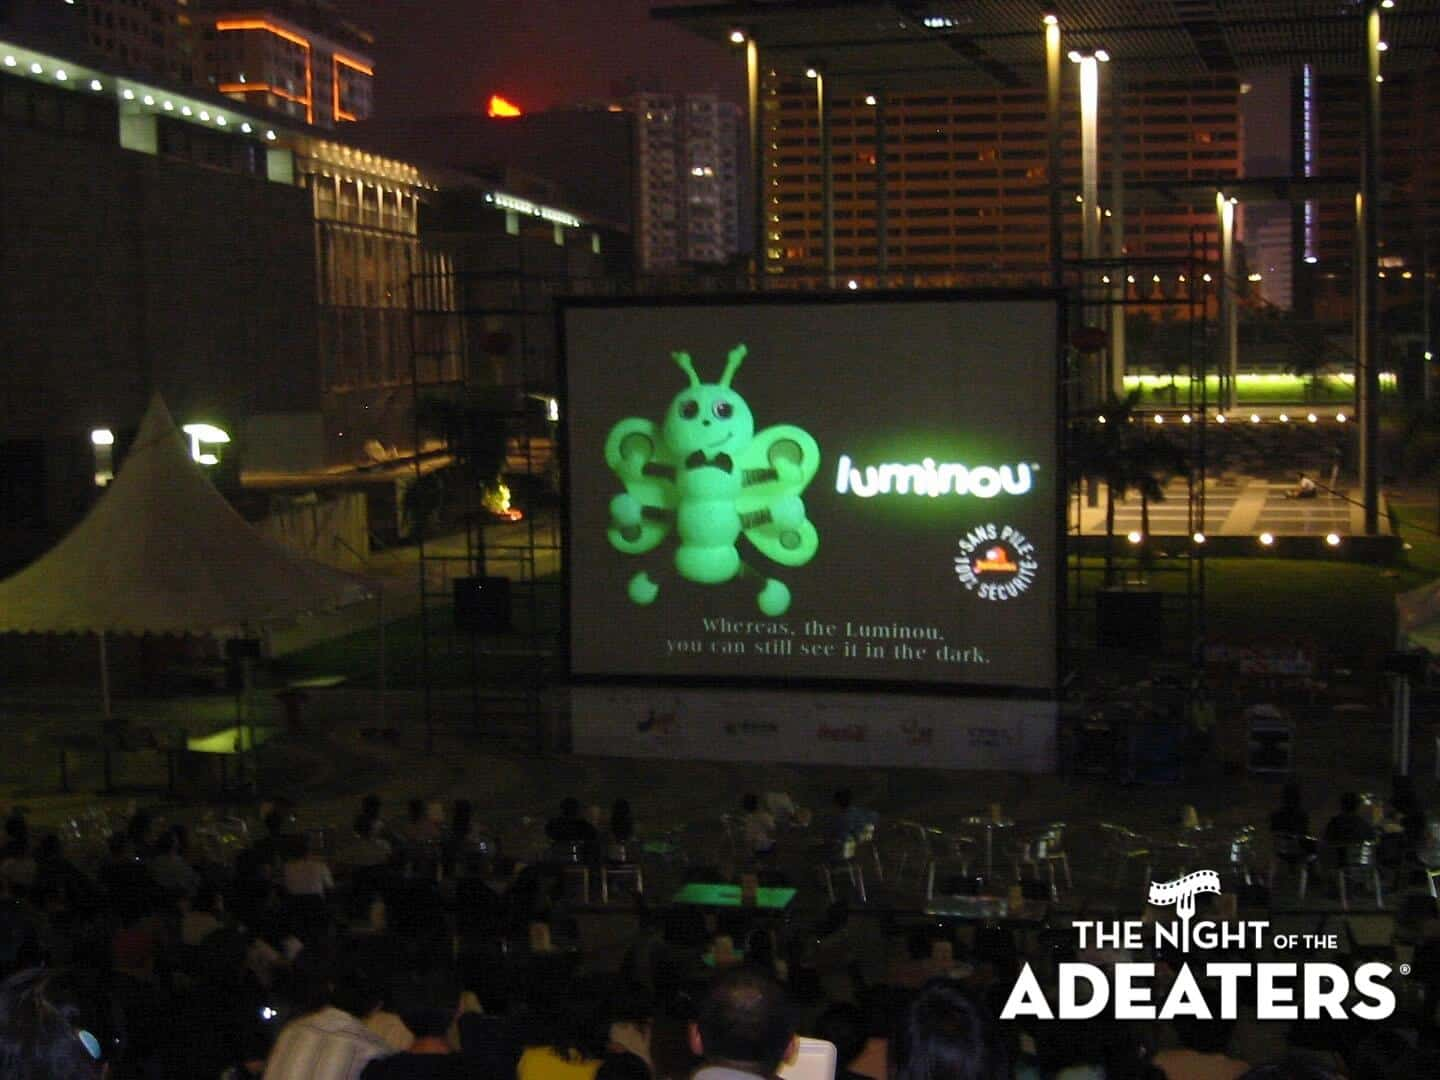 Night of the Adeaters. bconceptgroup.com